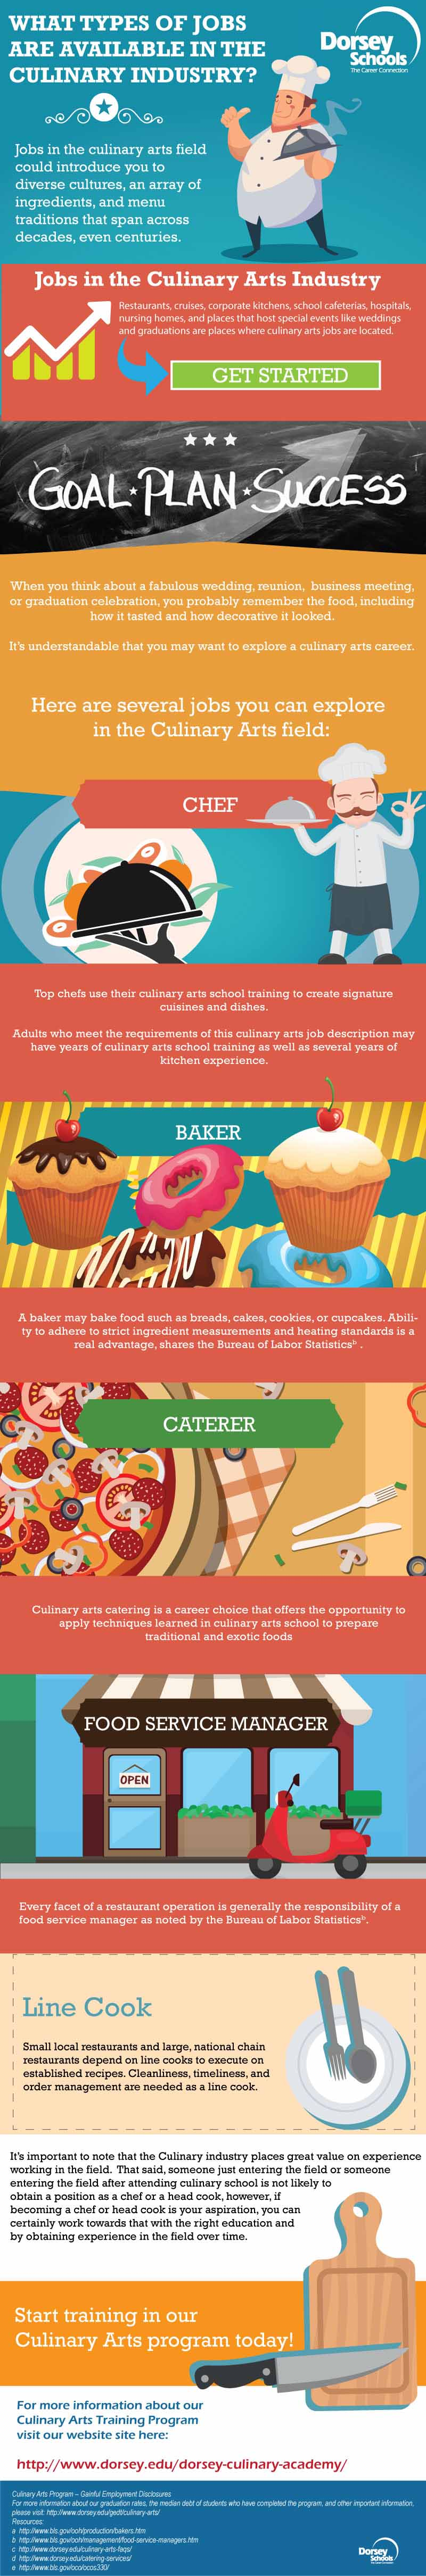 Culinary Job Opportunities Available For You - Infographic